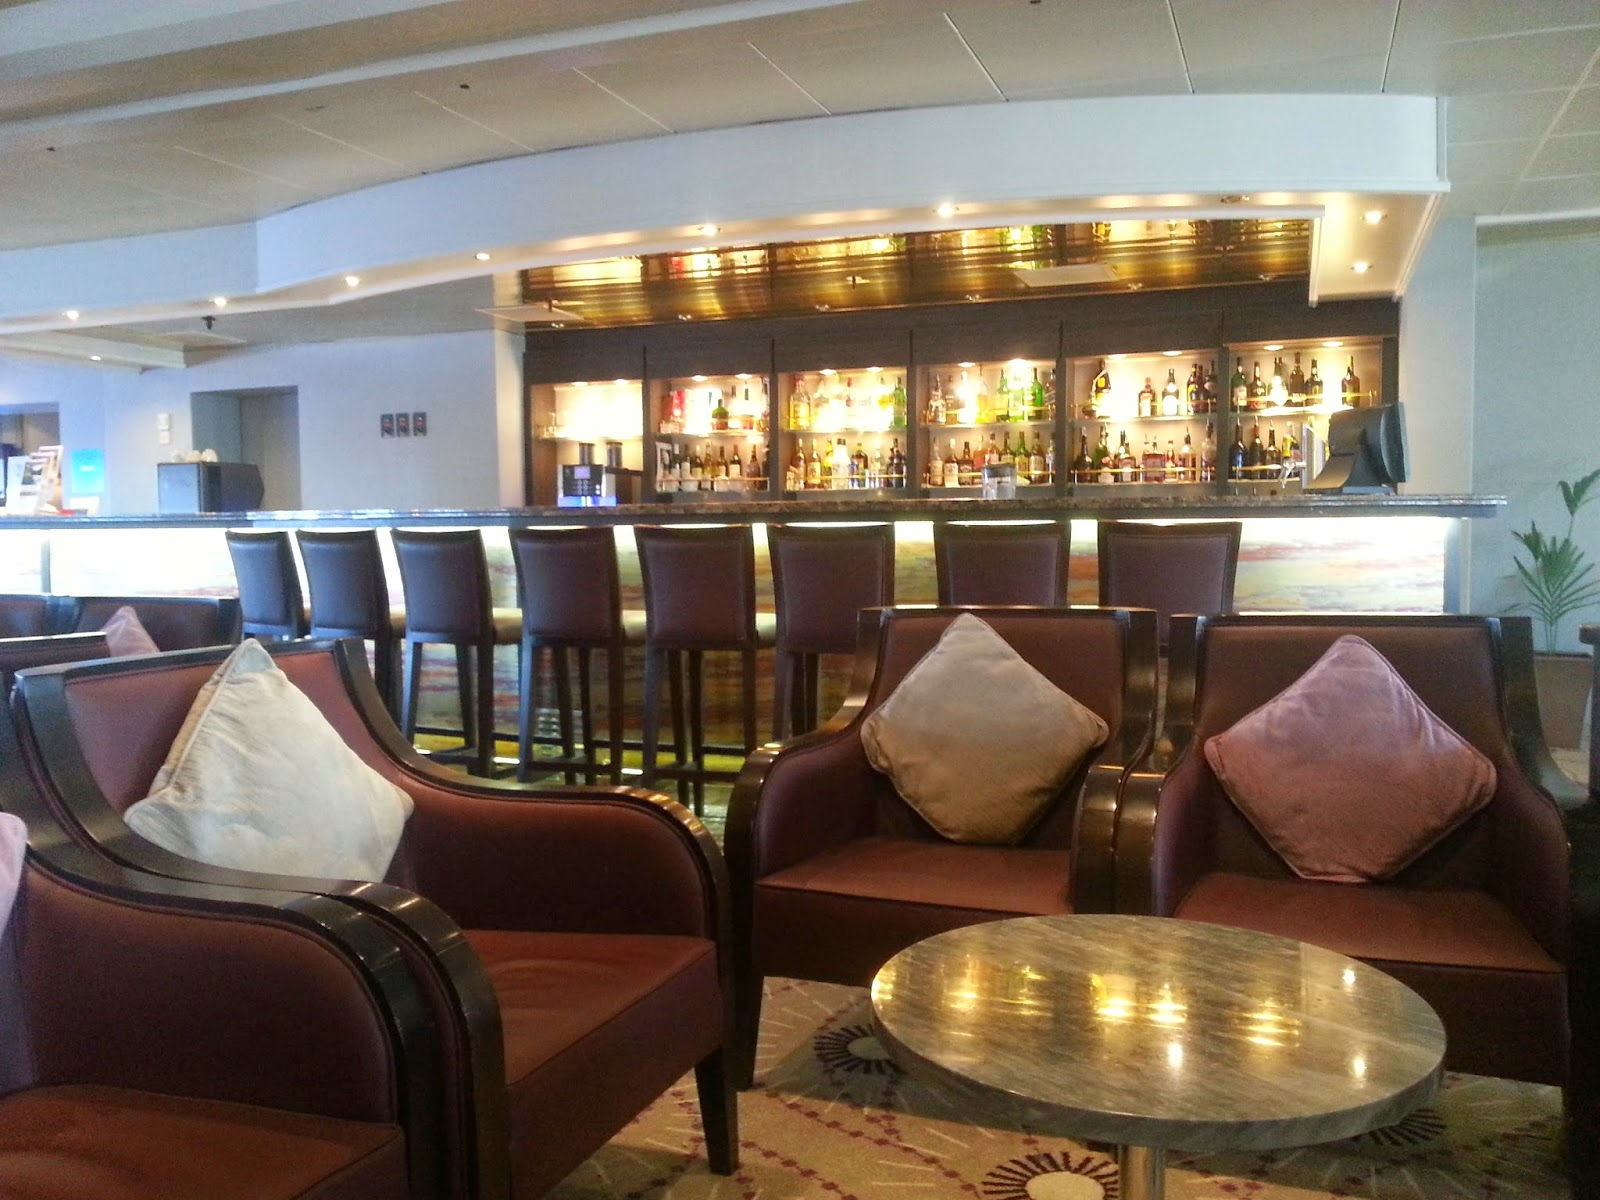 On Board Voyages of Discovery's Cruise Ship MV Voyager - Scott's Lounge